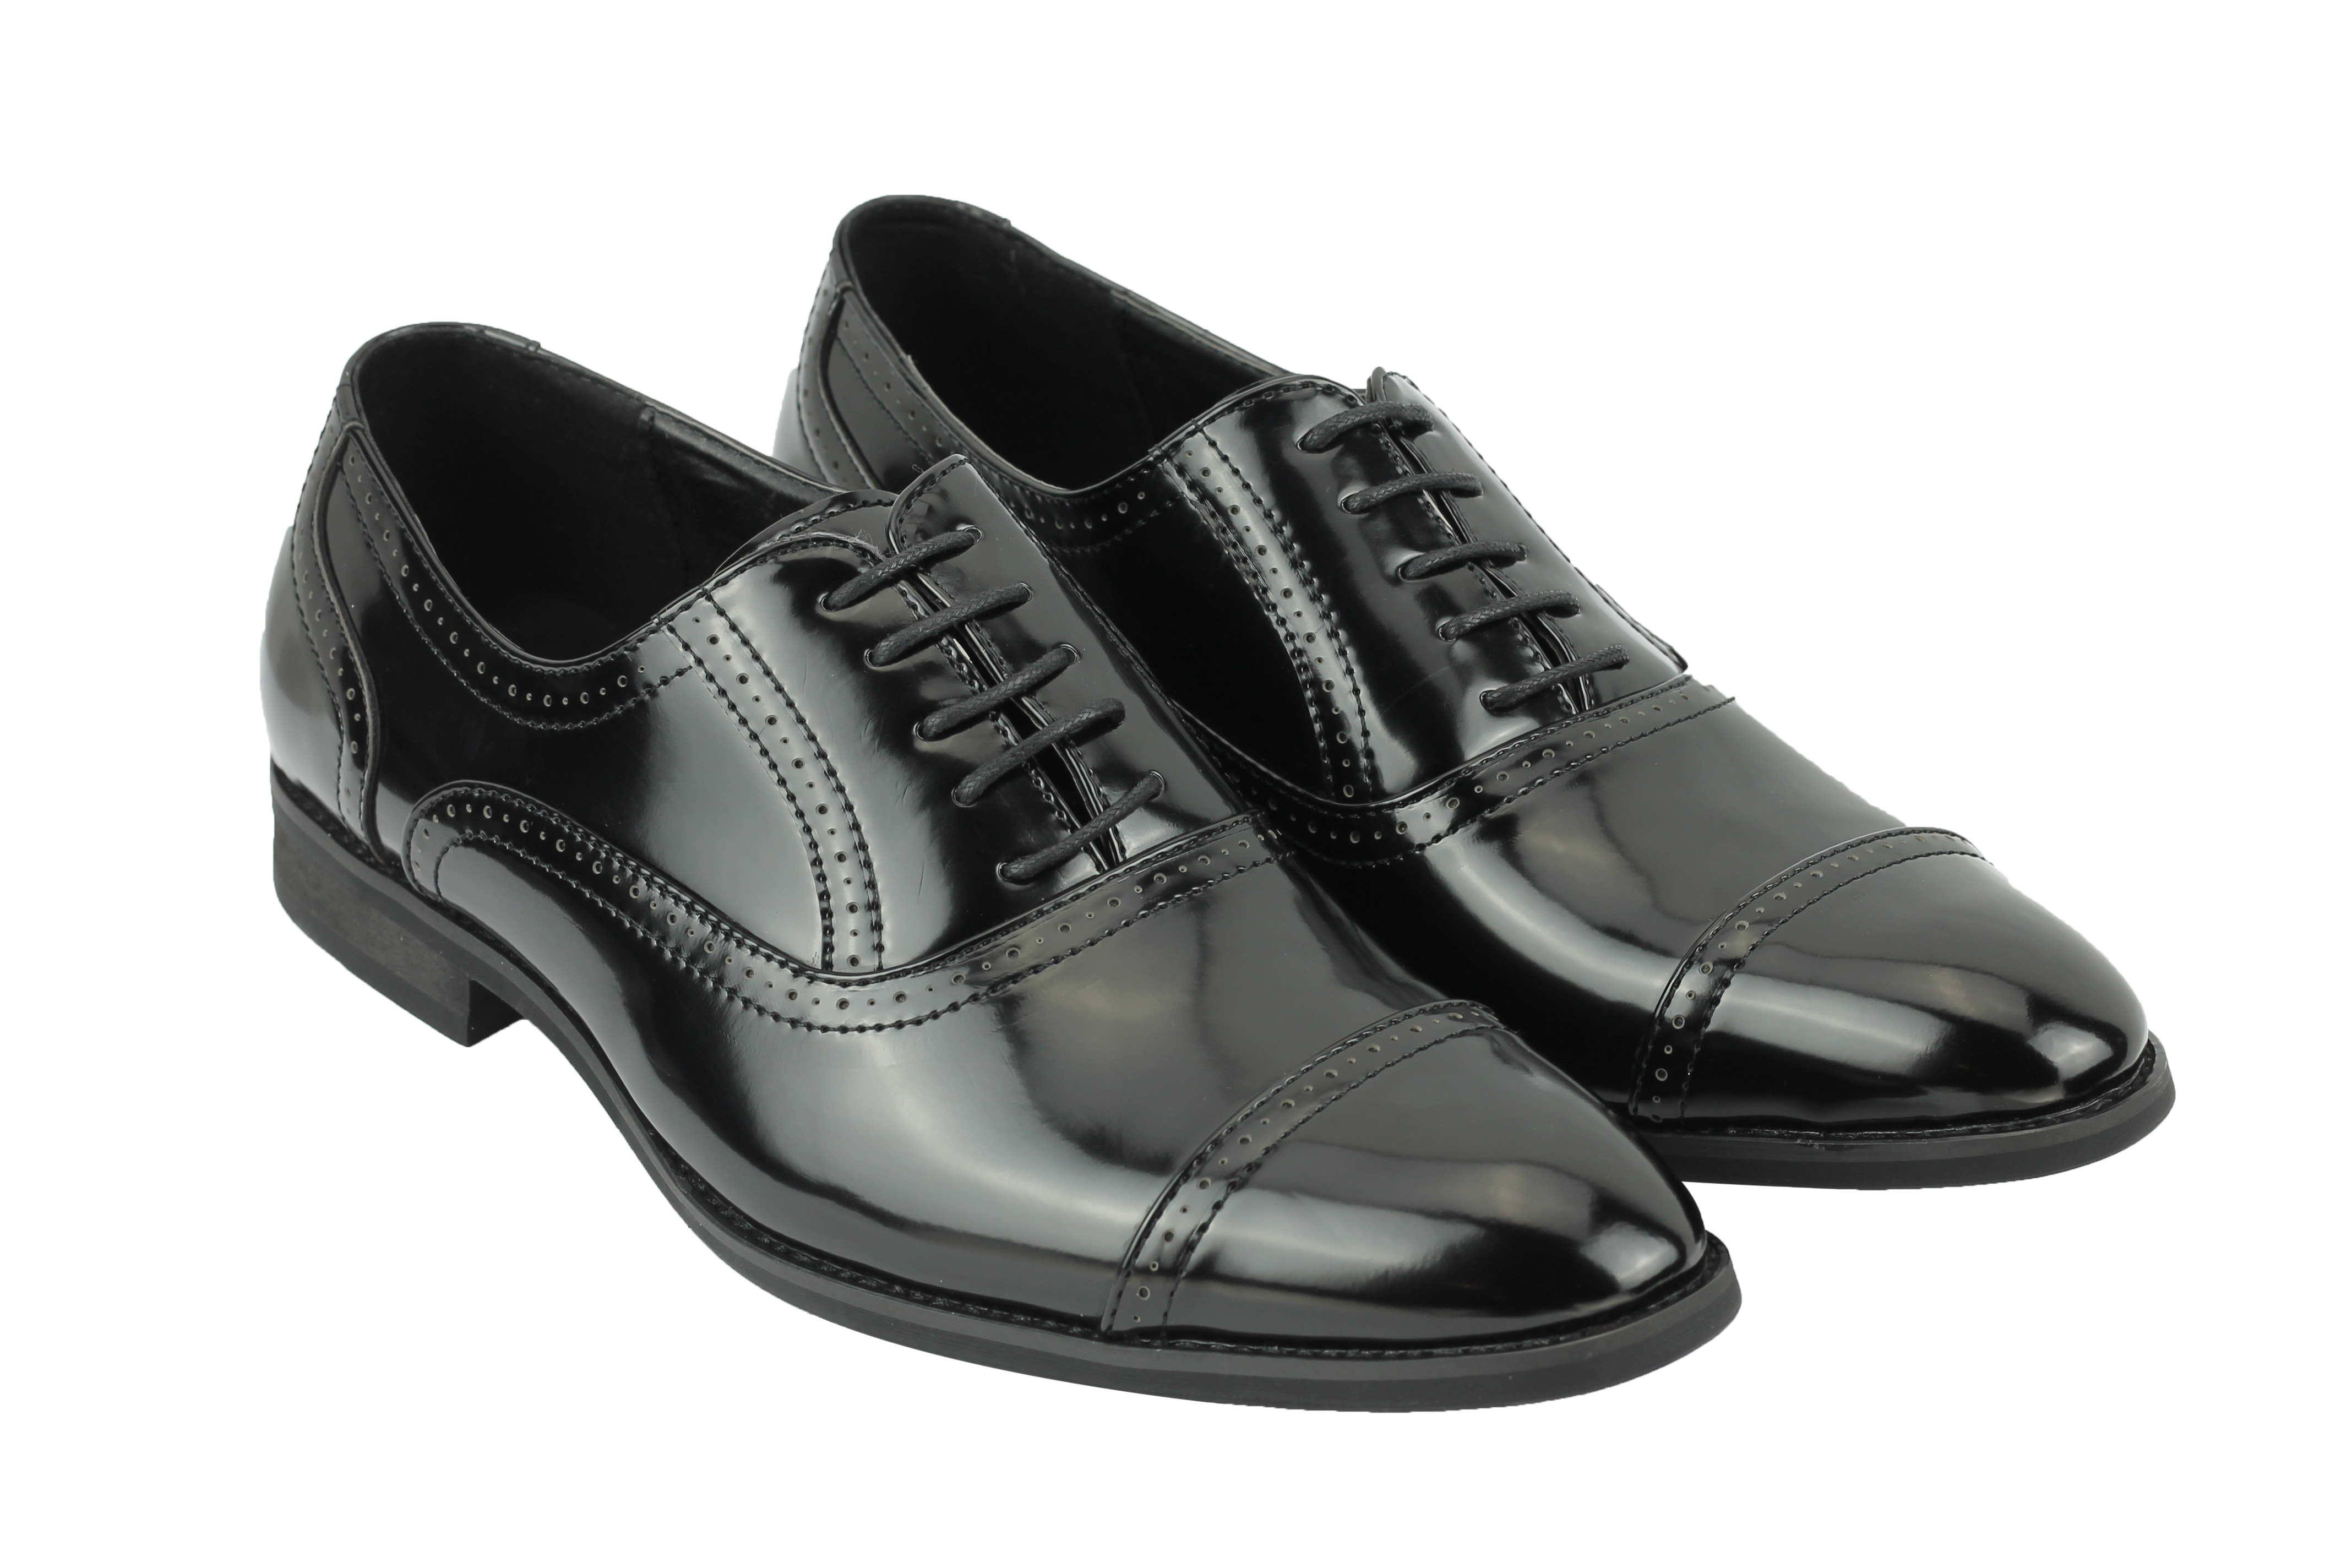 Mens Patent Leather Brogues Black Brown Smart Casual Lace up Shoes 6 ... 97311ccb3bbc